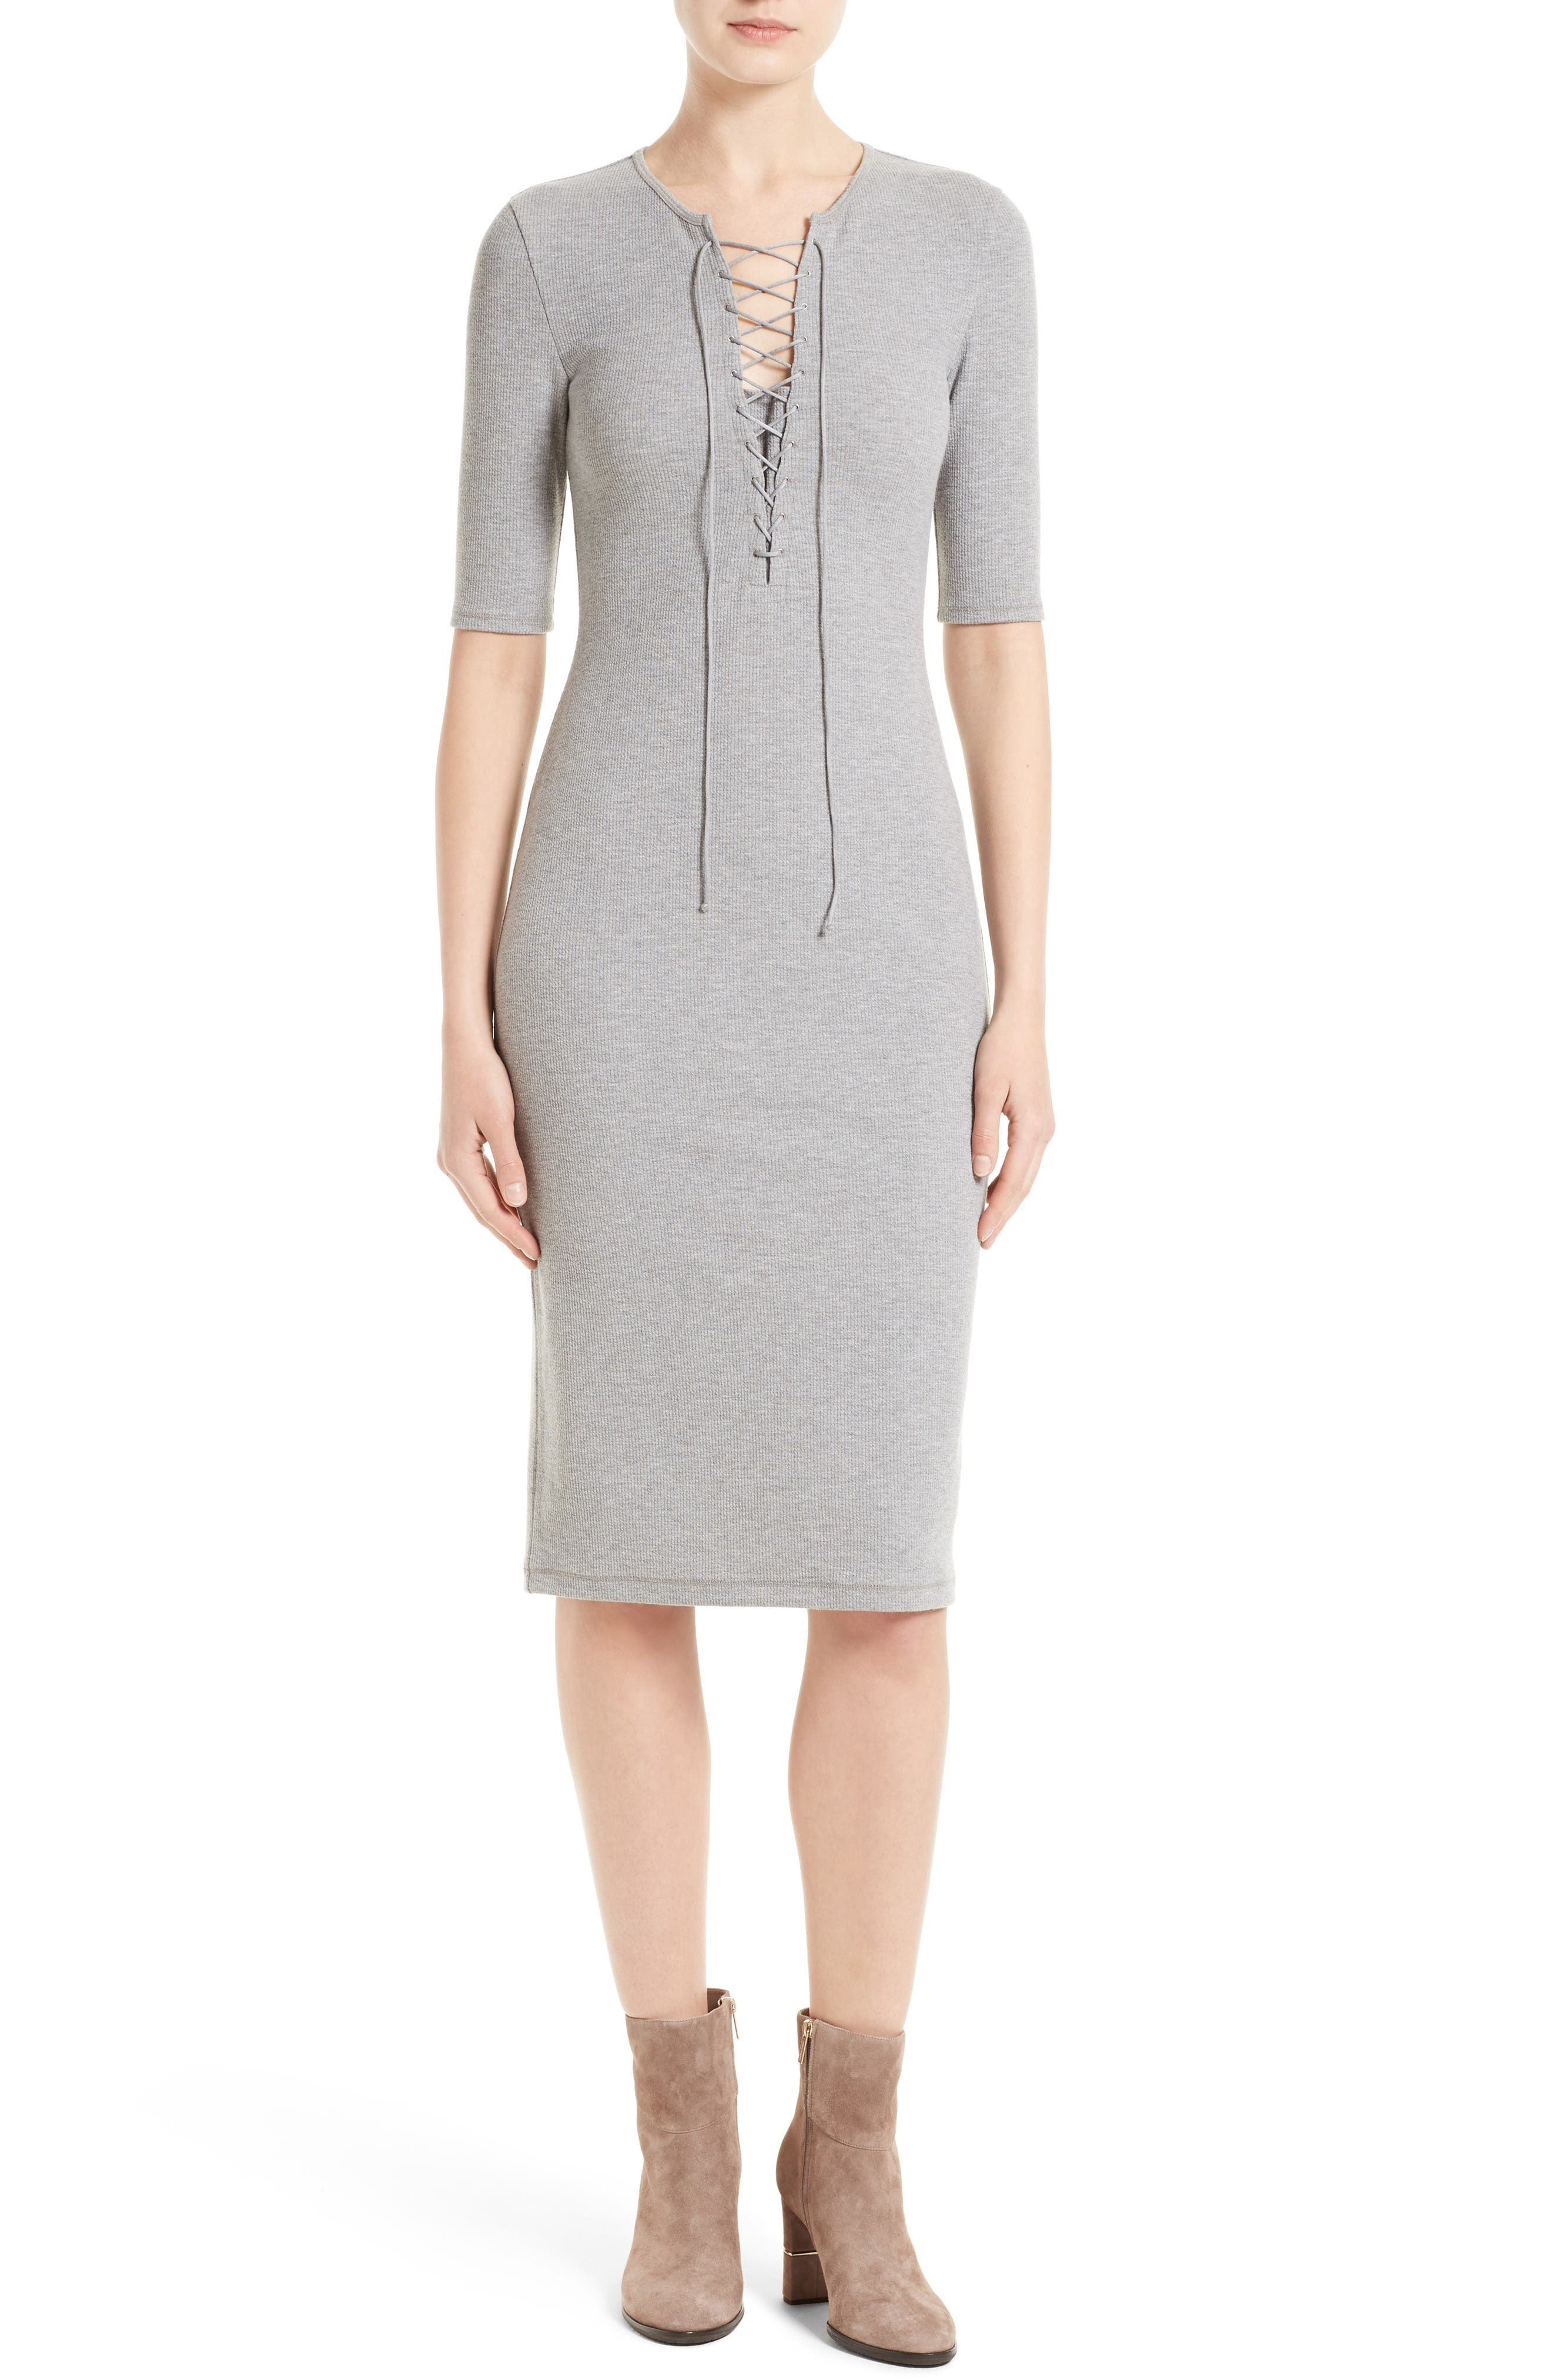 Derek Lam 10 Crosby Lace-Up T-Shirt Dress